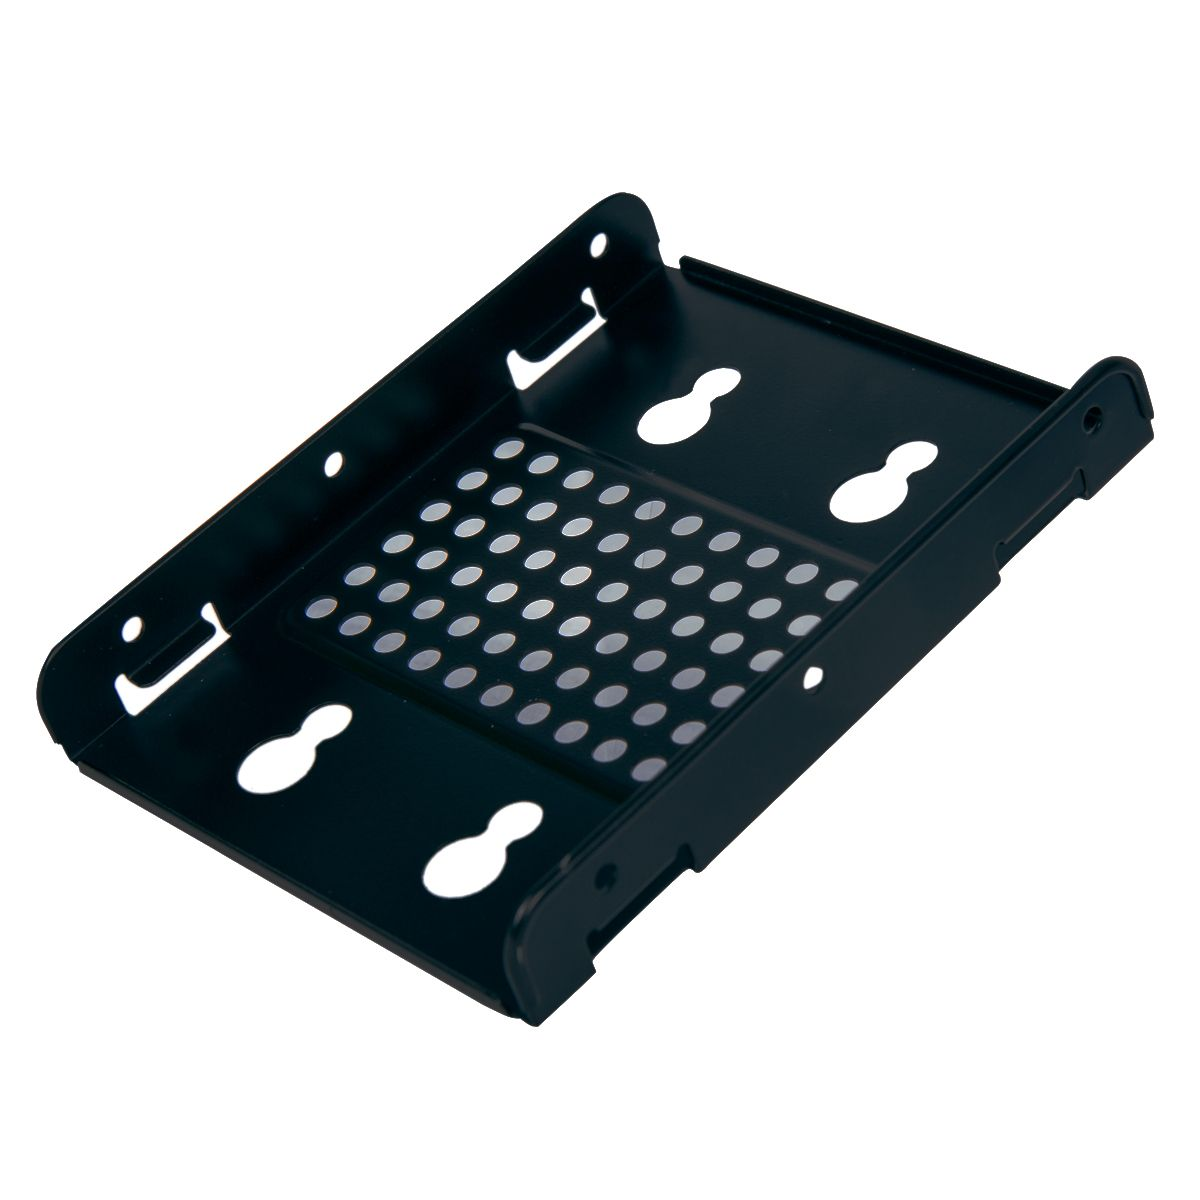 "PHANTEKS ENTHOO 3.5"" HDD BRACKET PH-HDDKT_01"